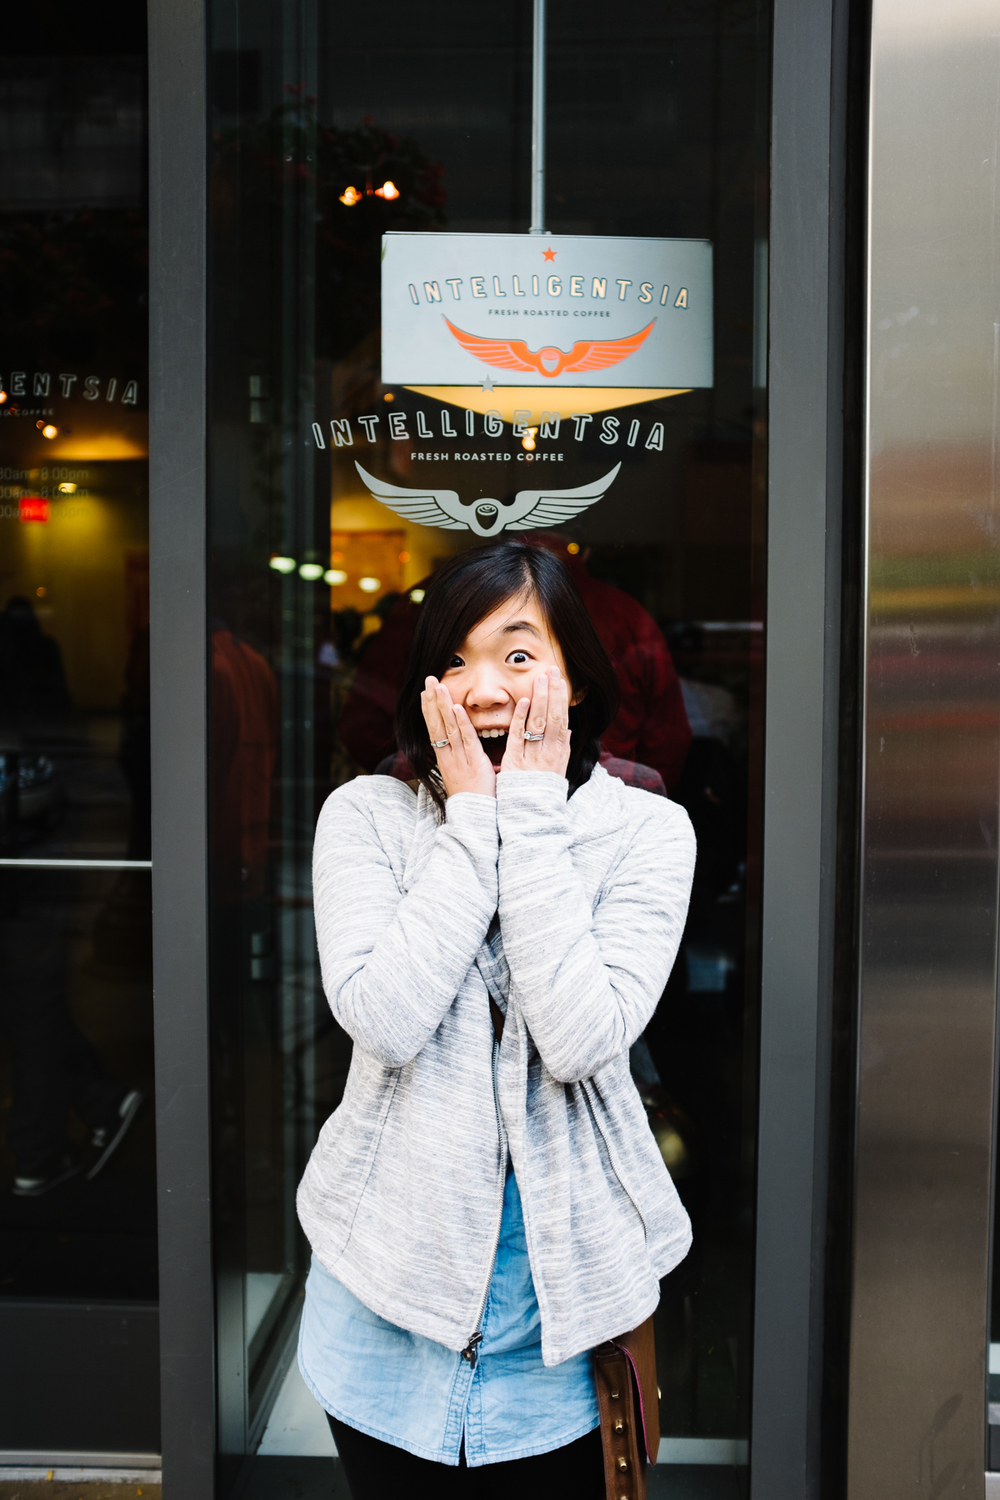 Sojung was most excited to try Intelligentsia for the first time.